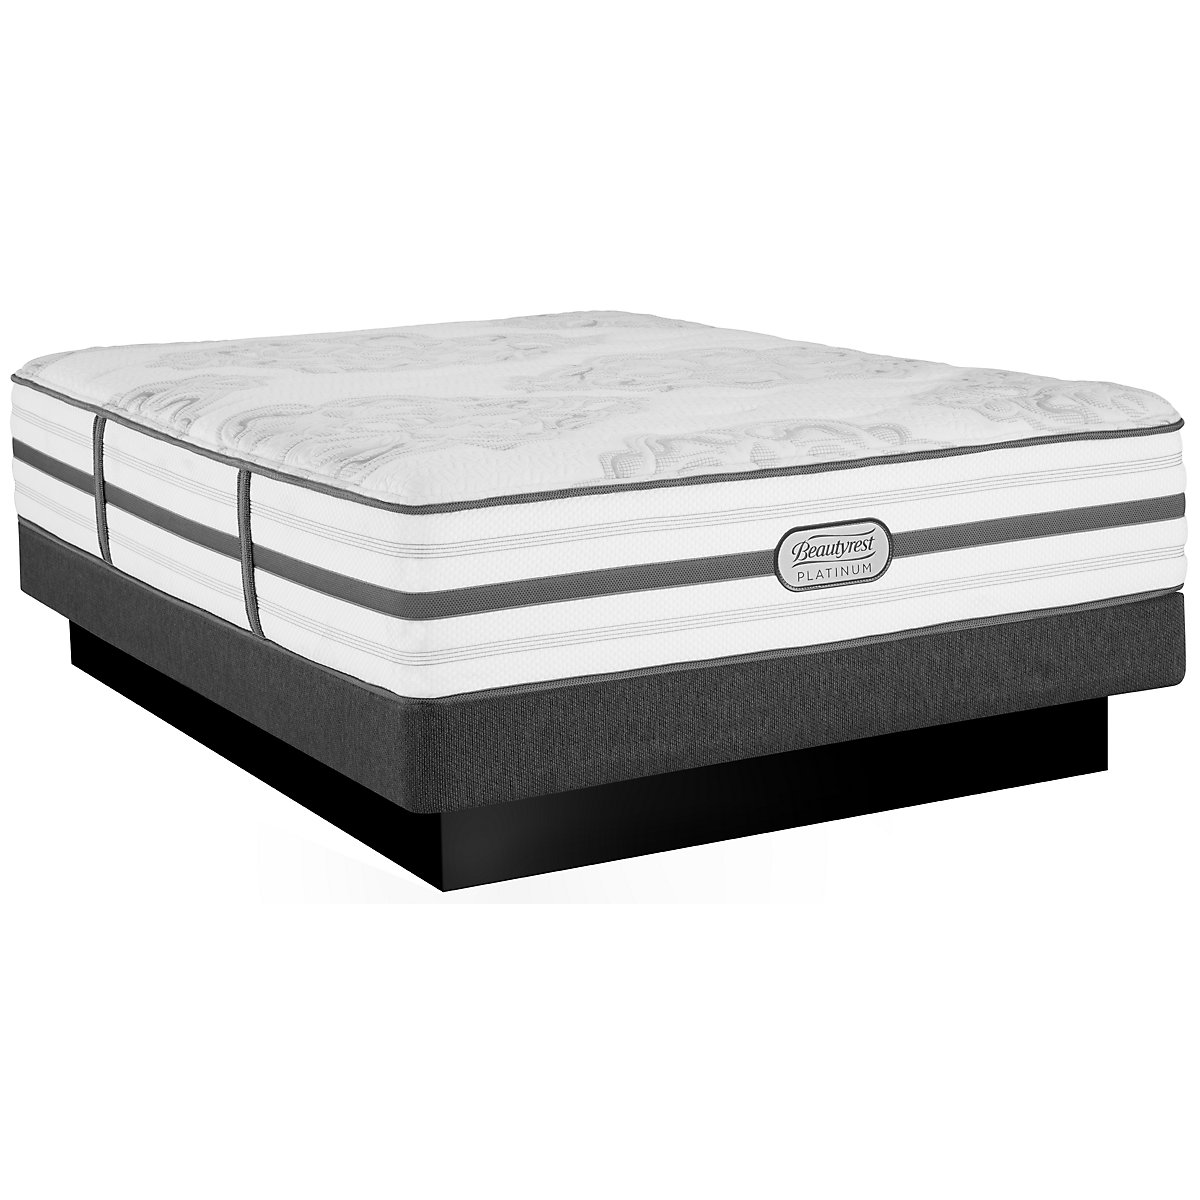 Beautyrest Platinum Brittany Plush Innerspring Low-Profile Mattress Set